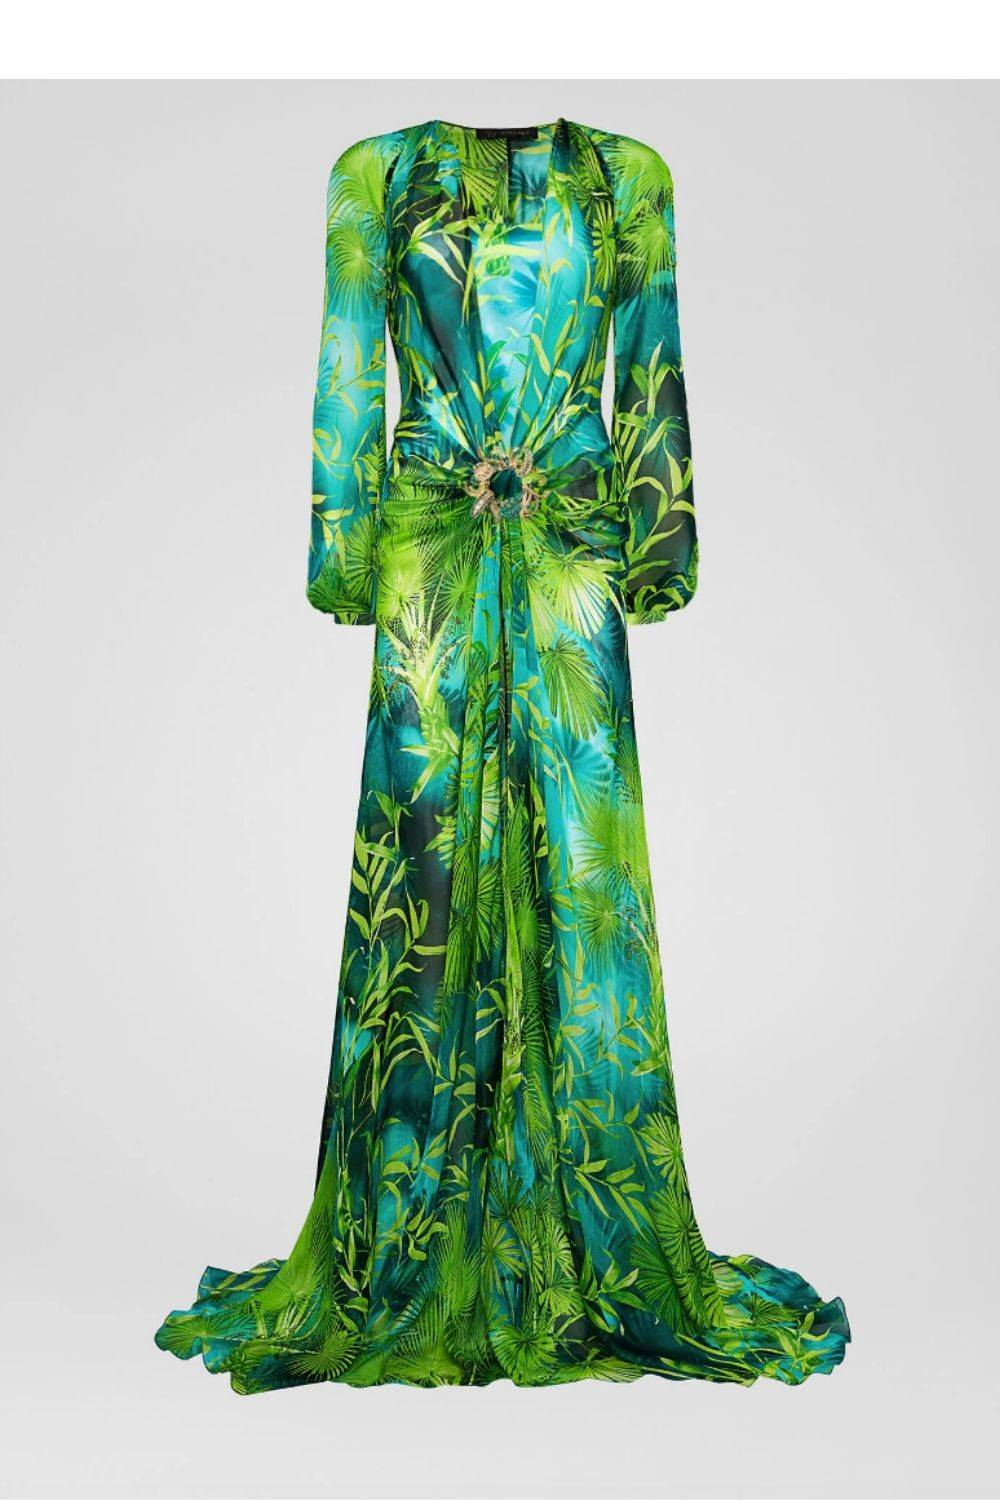 The jungle dress de Versace